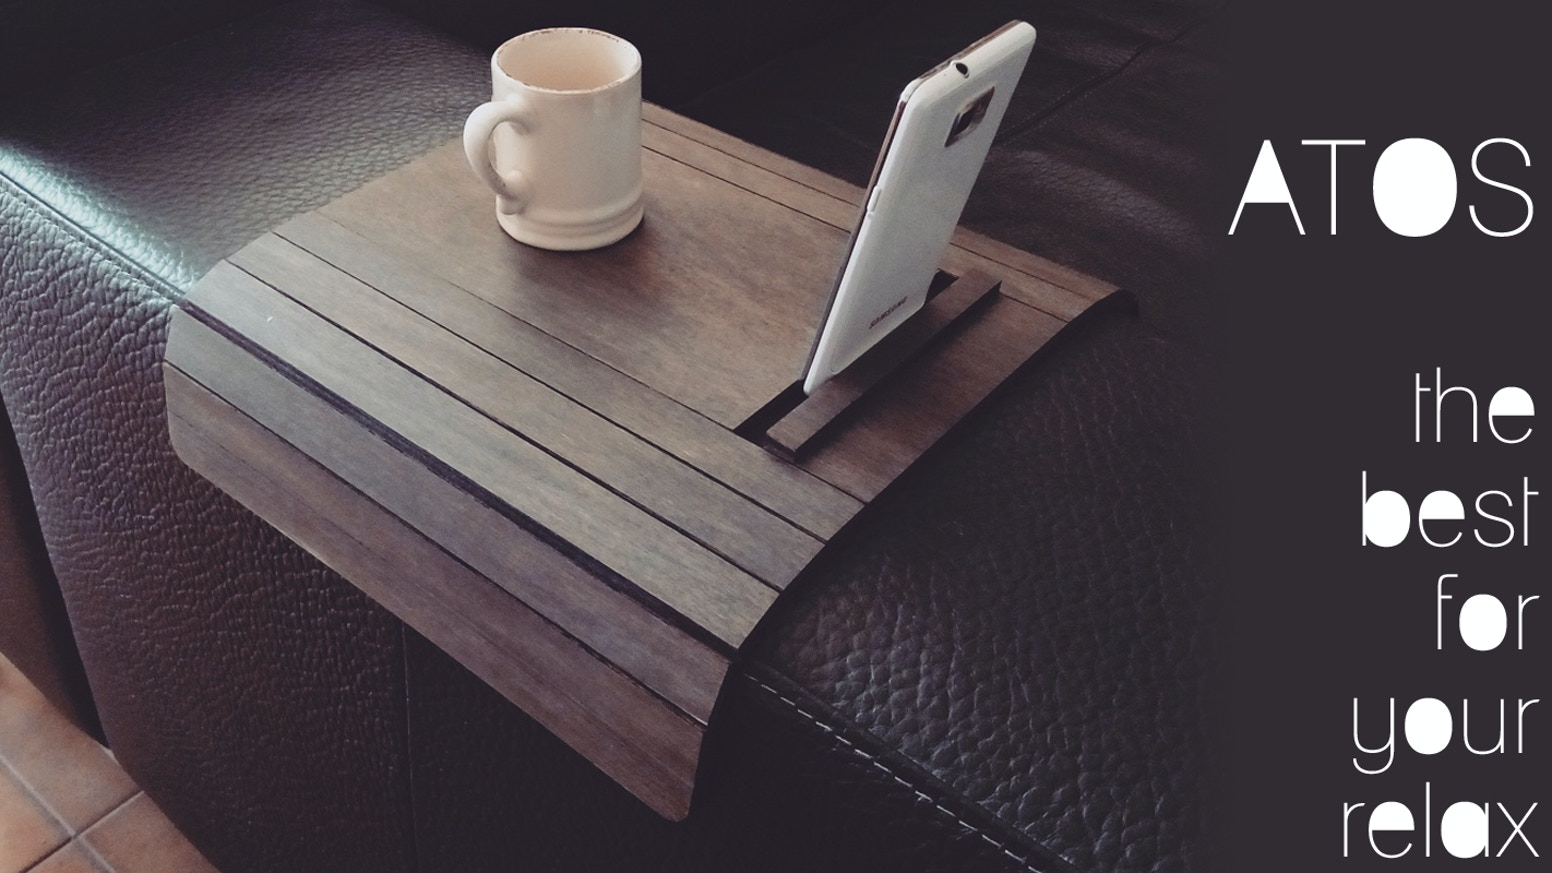 Atos Sofa Arm Rest Table With Phone And Tablet Stand By Alessio